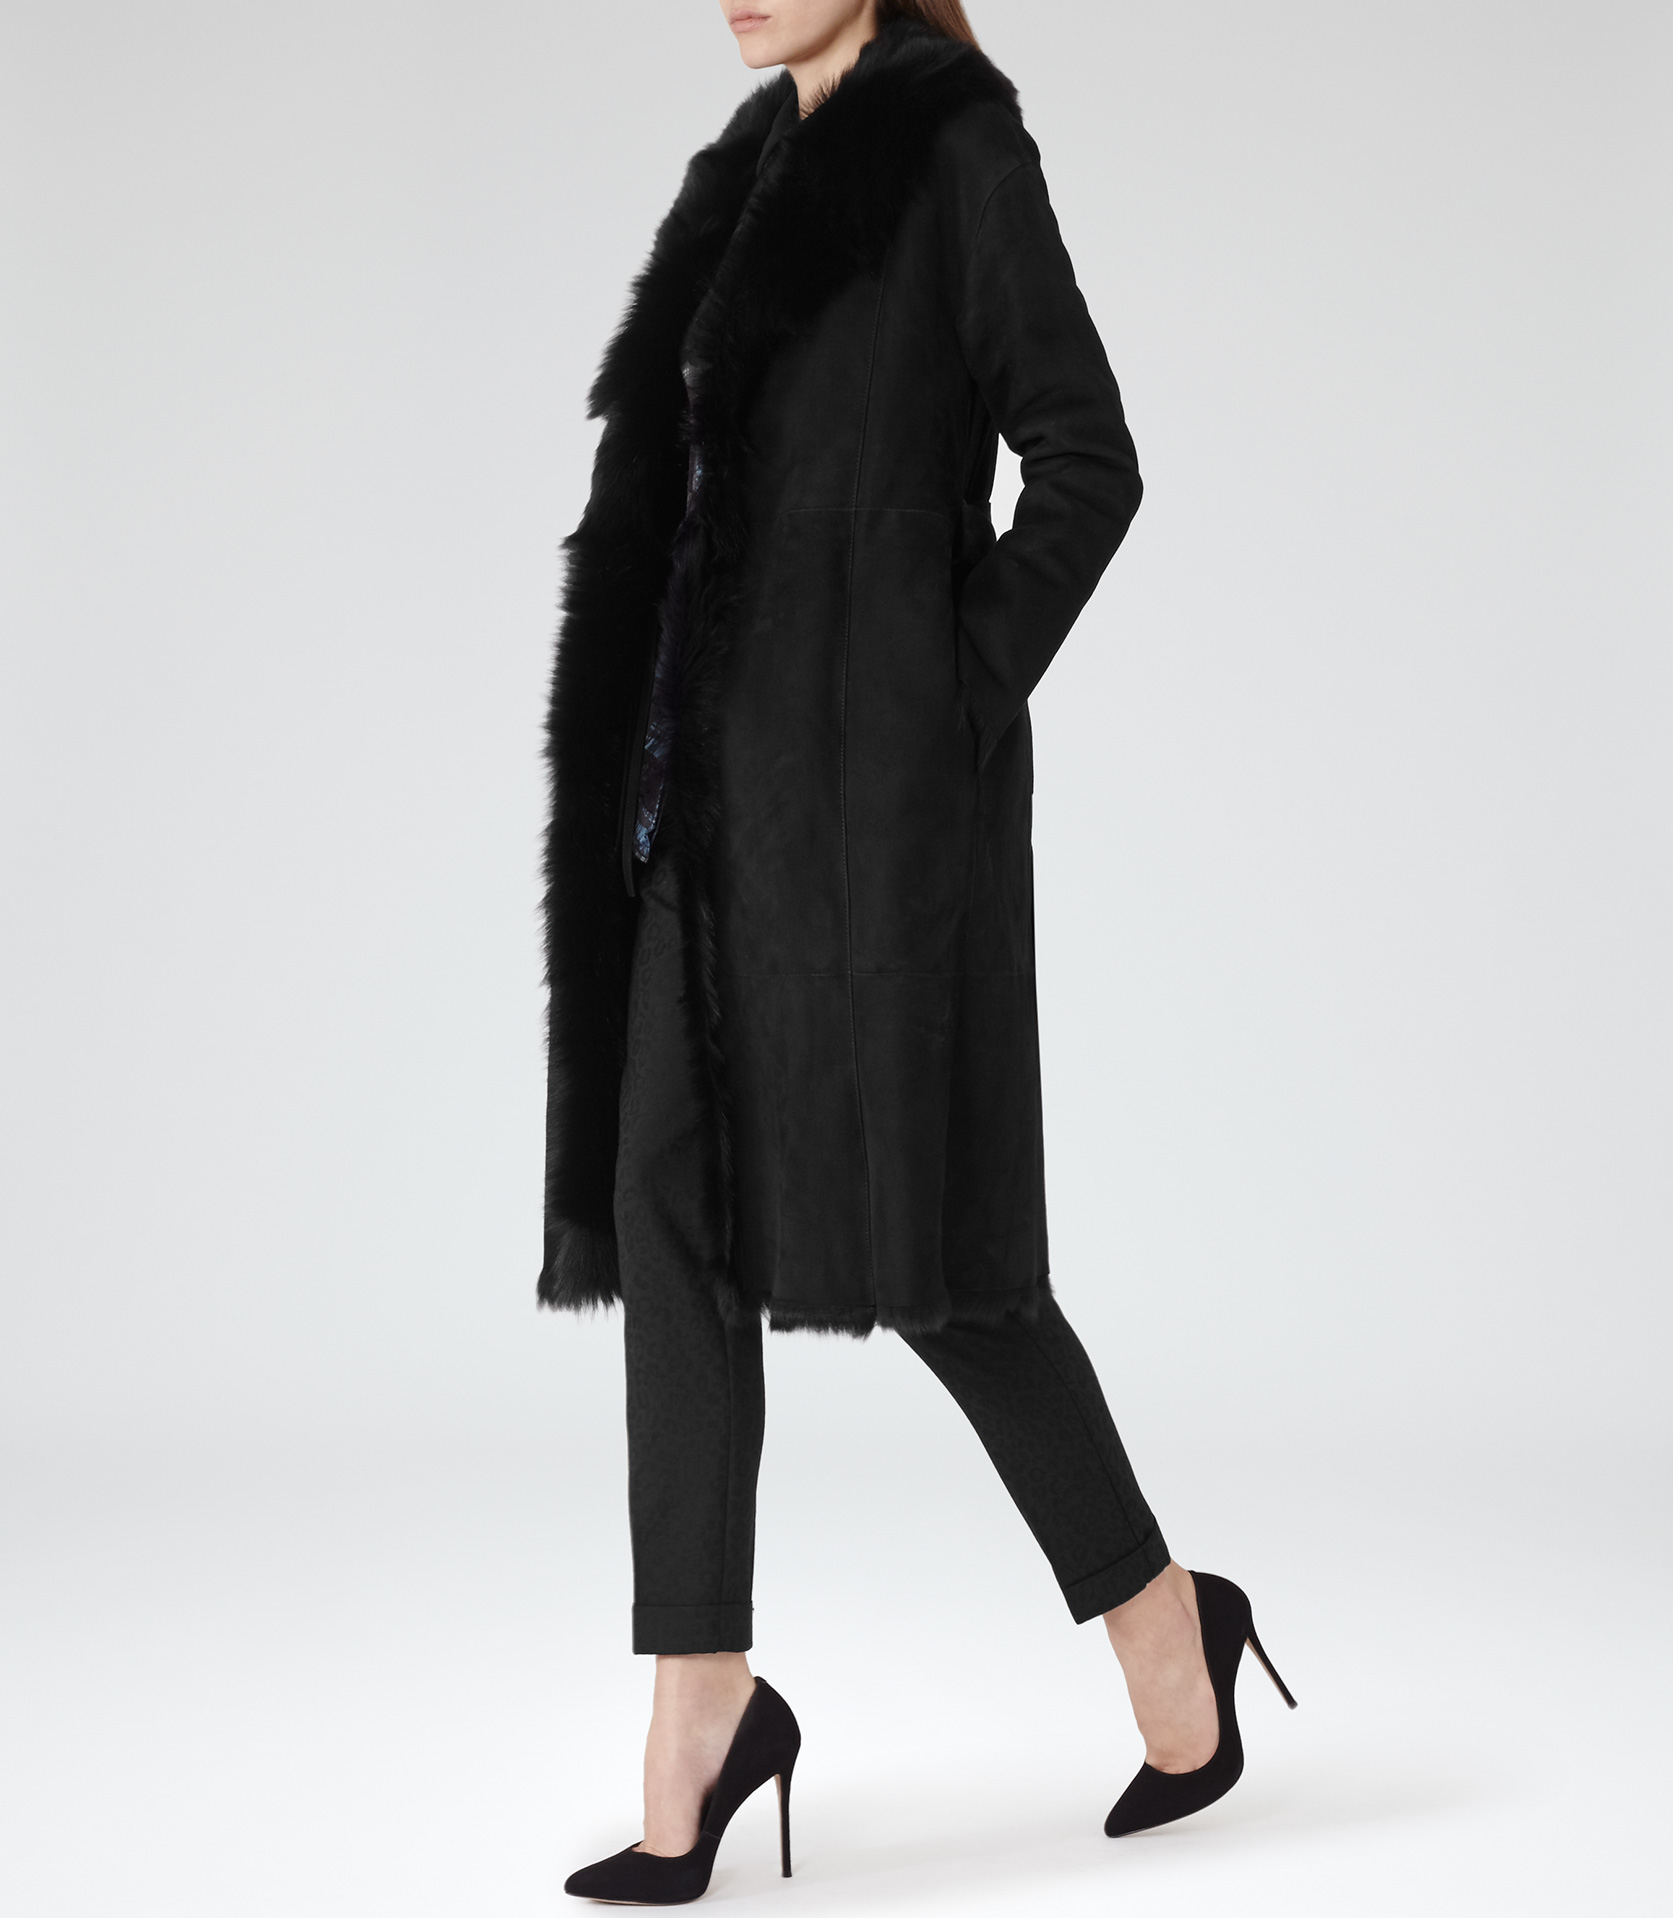 Reiss Biba Shearling Wrap Coat in Black | Lyst